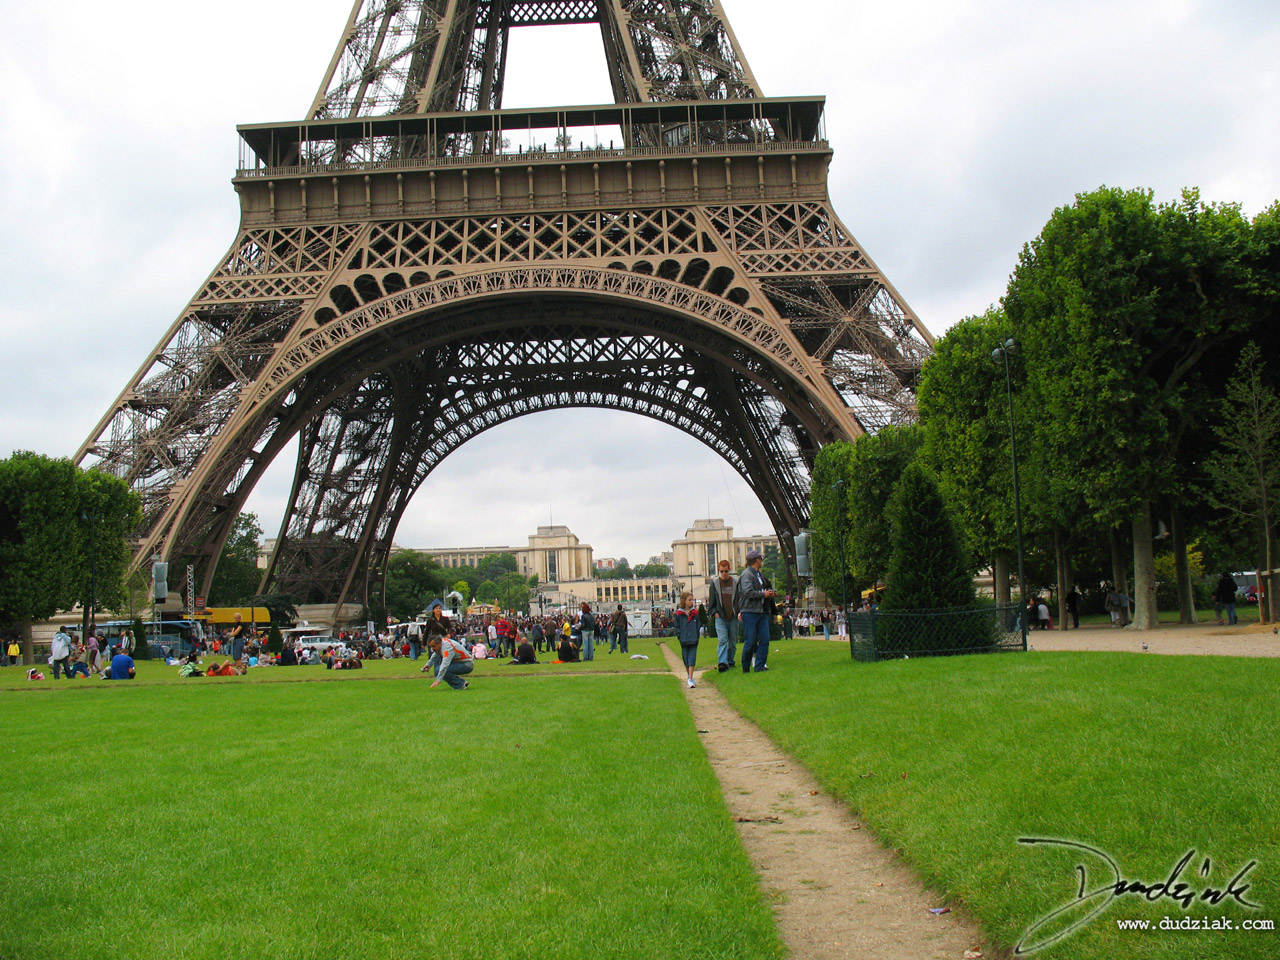 Champ de Mars,  Paris France,  Eiffel Tower,  Tour Eiffel